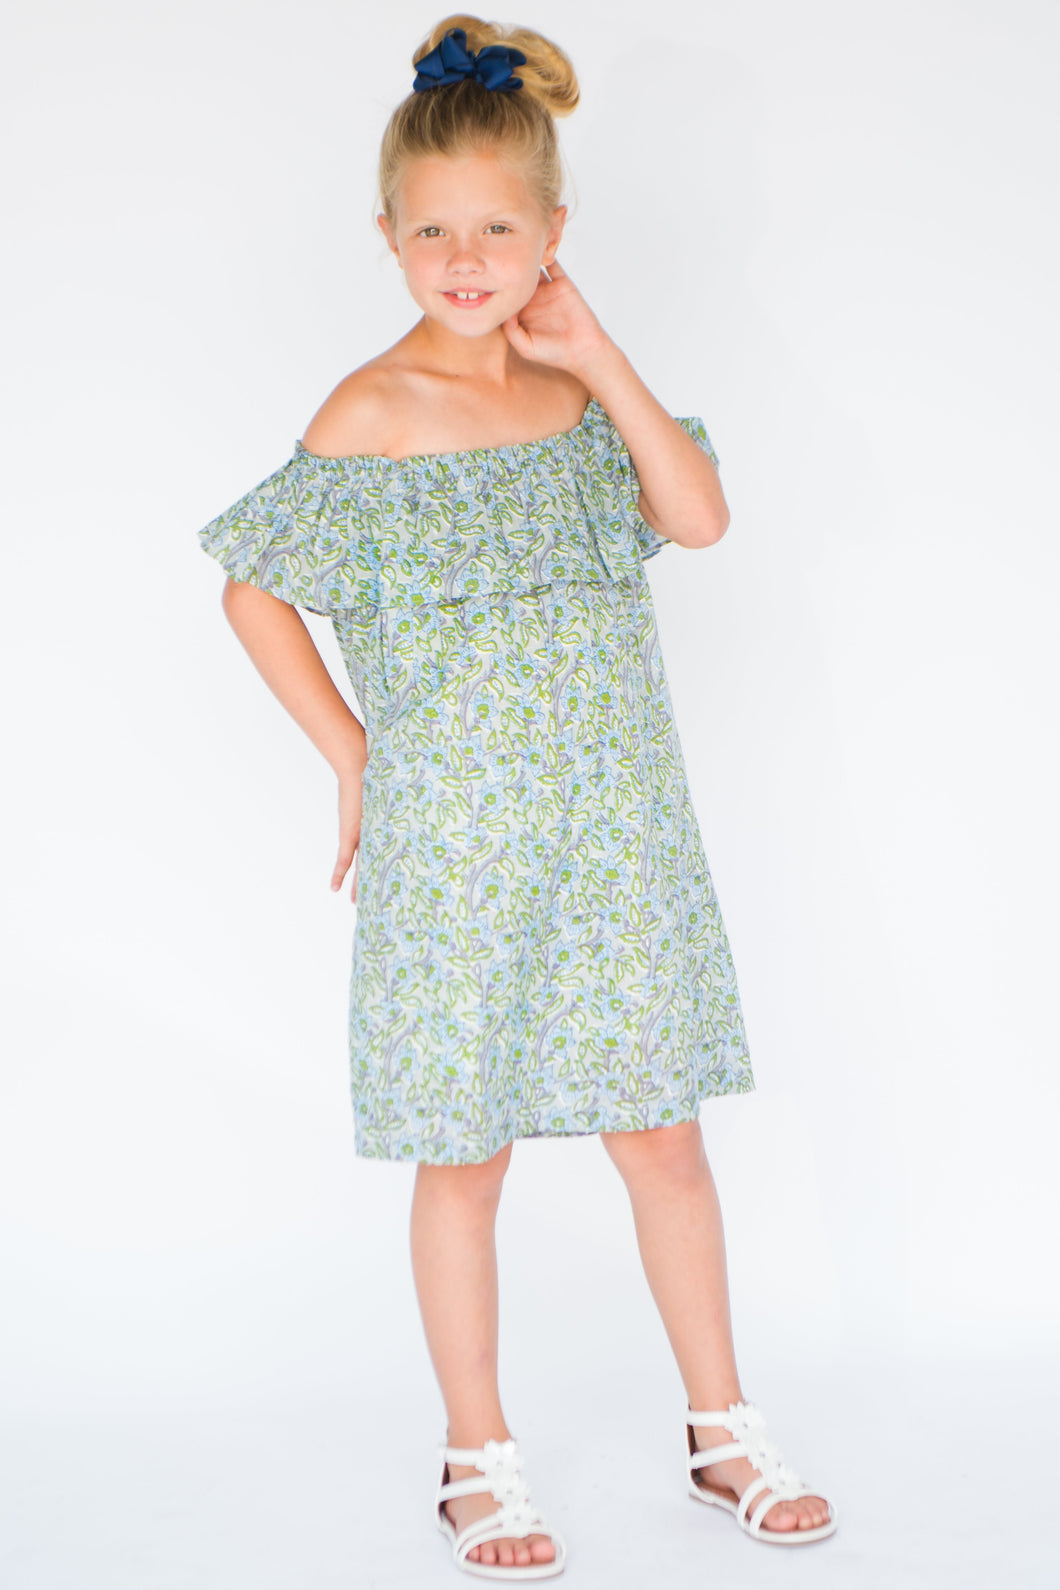 Powder Blue Printed Off-Shoulder dress - Kids Clothing, Dress - Girls Dress, Yo Baby Online - Yo Baby